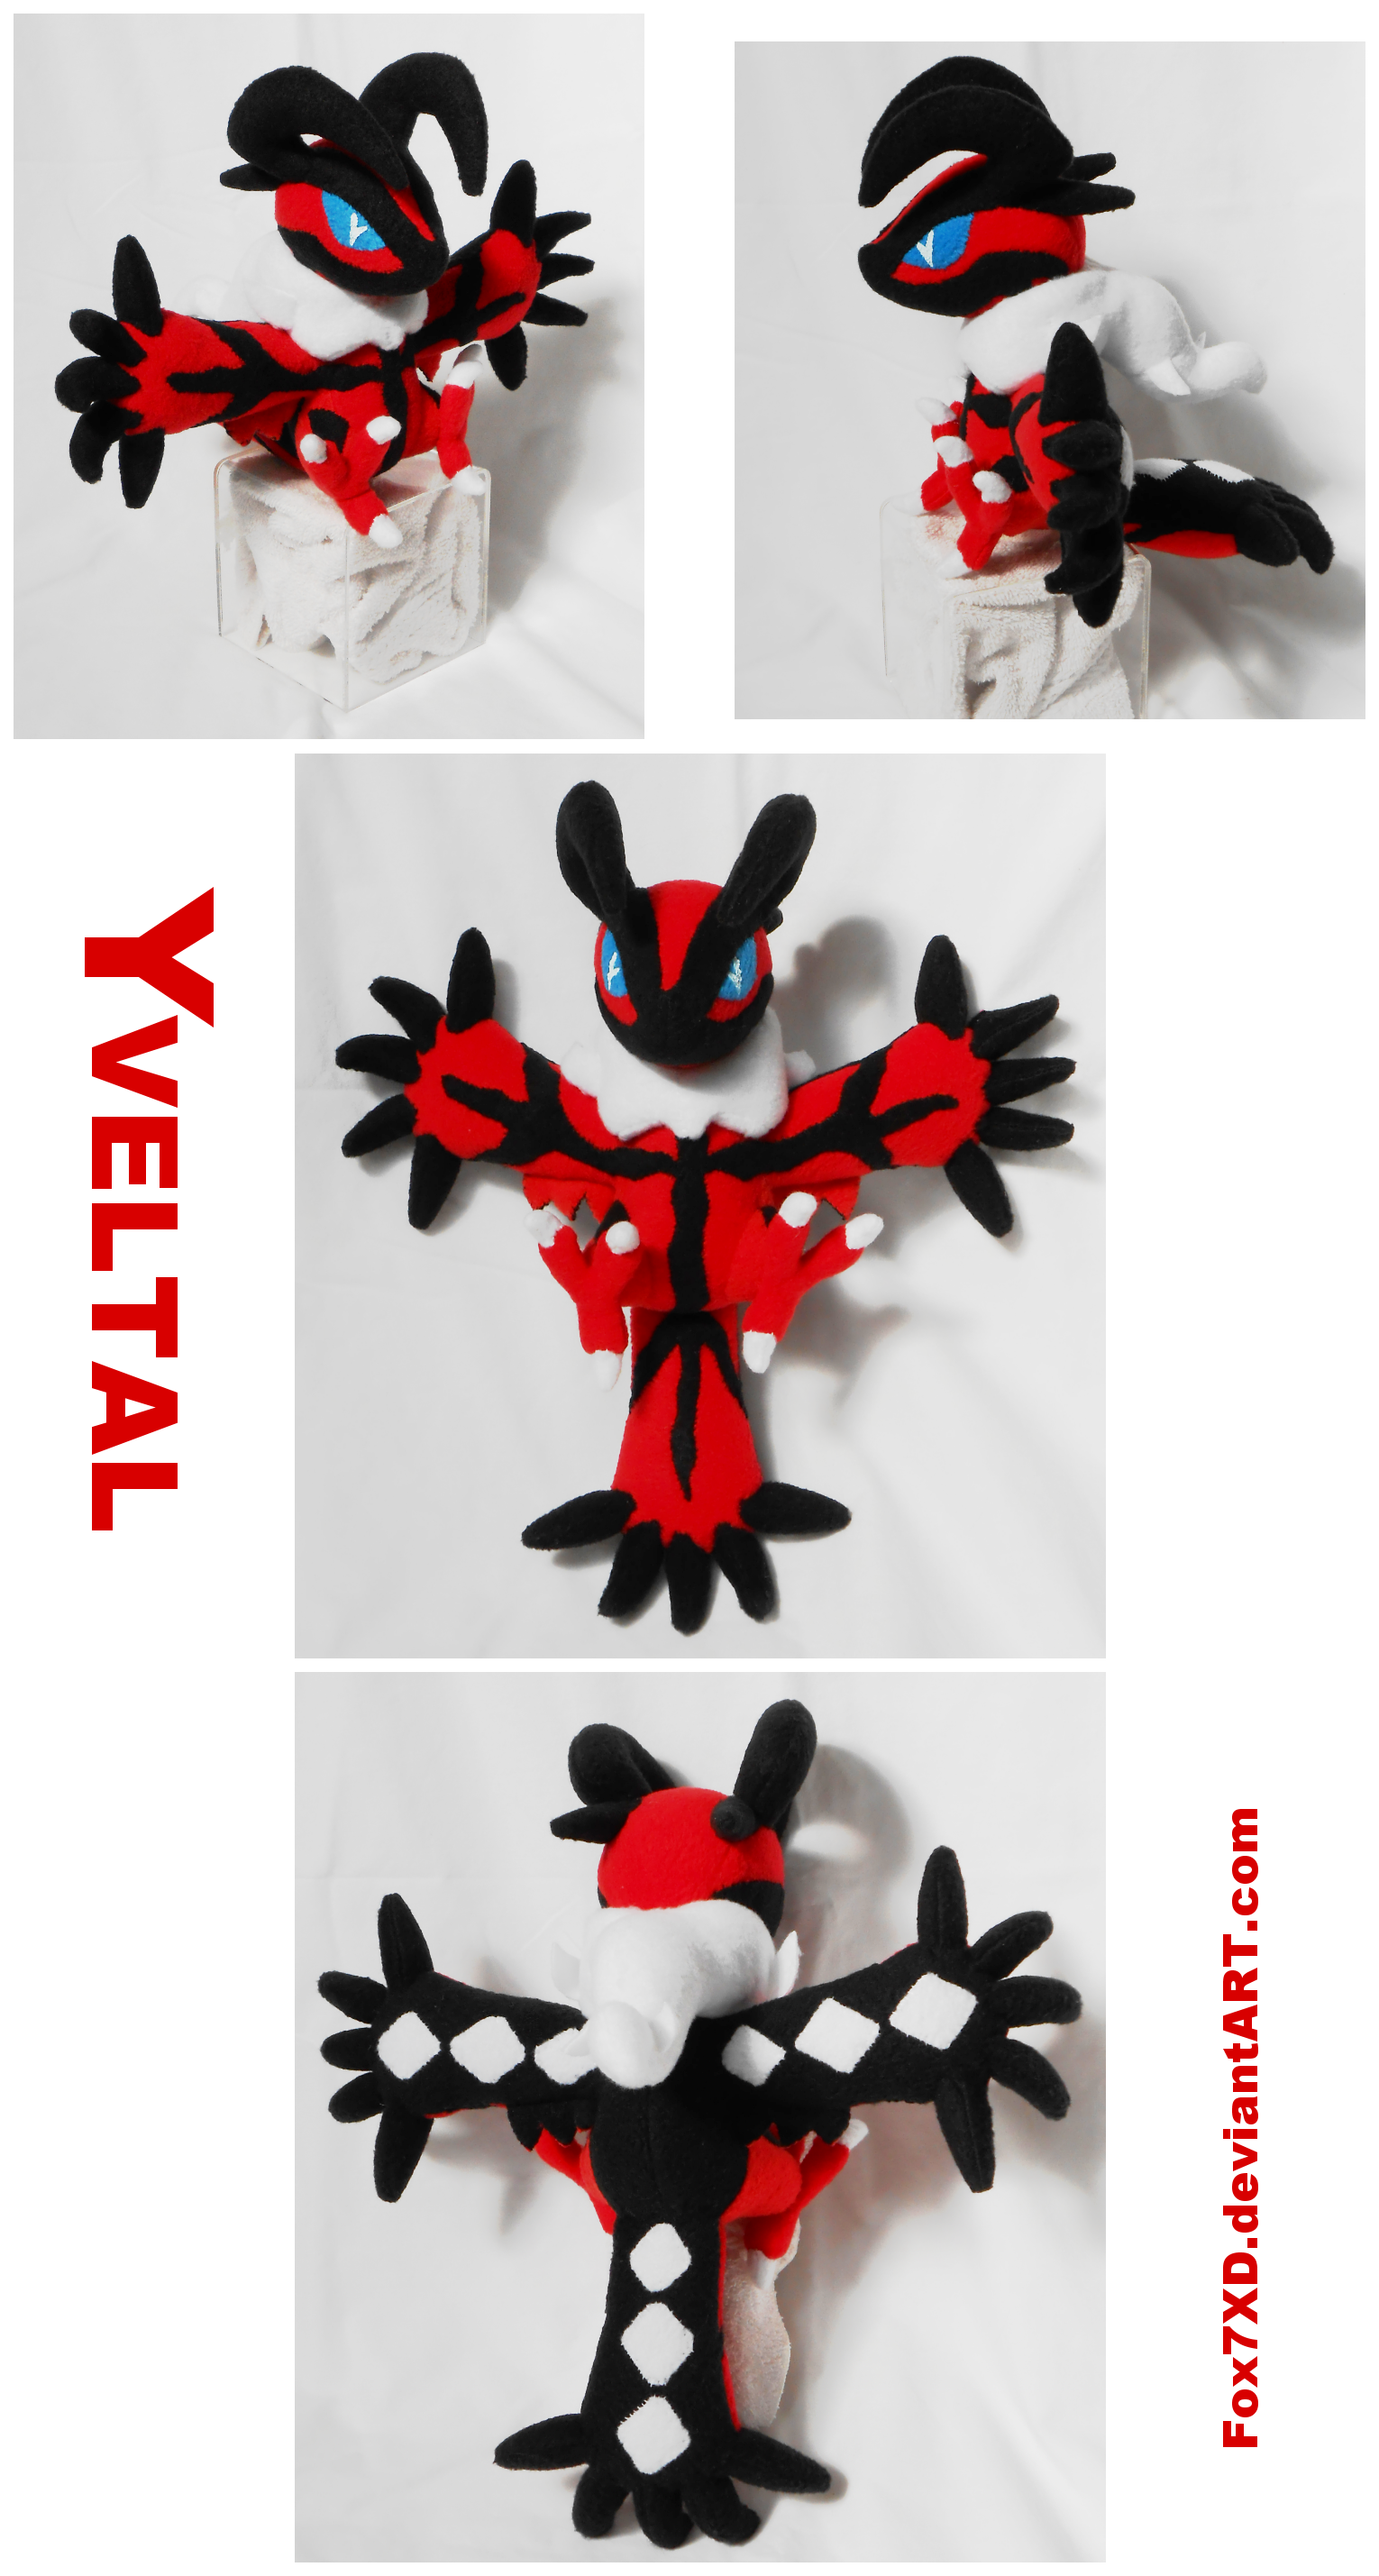 Yveltal Pokedoll by Fox7XD